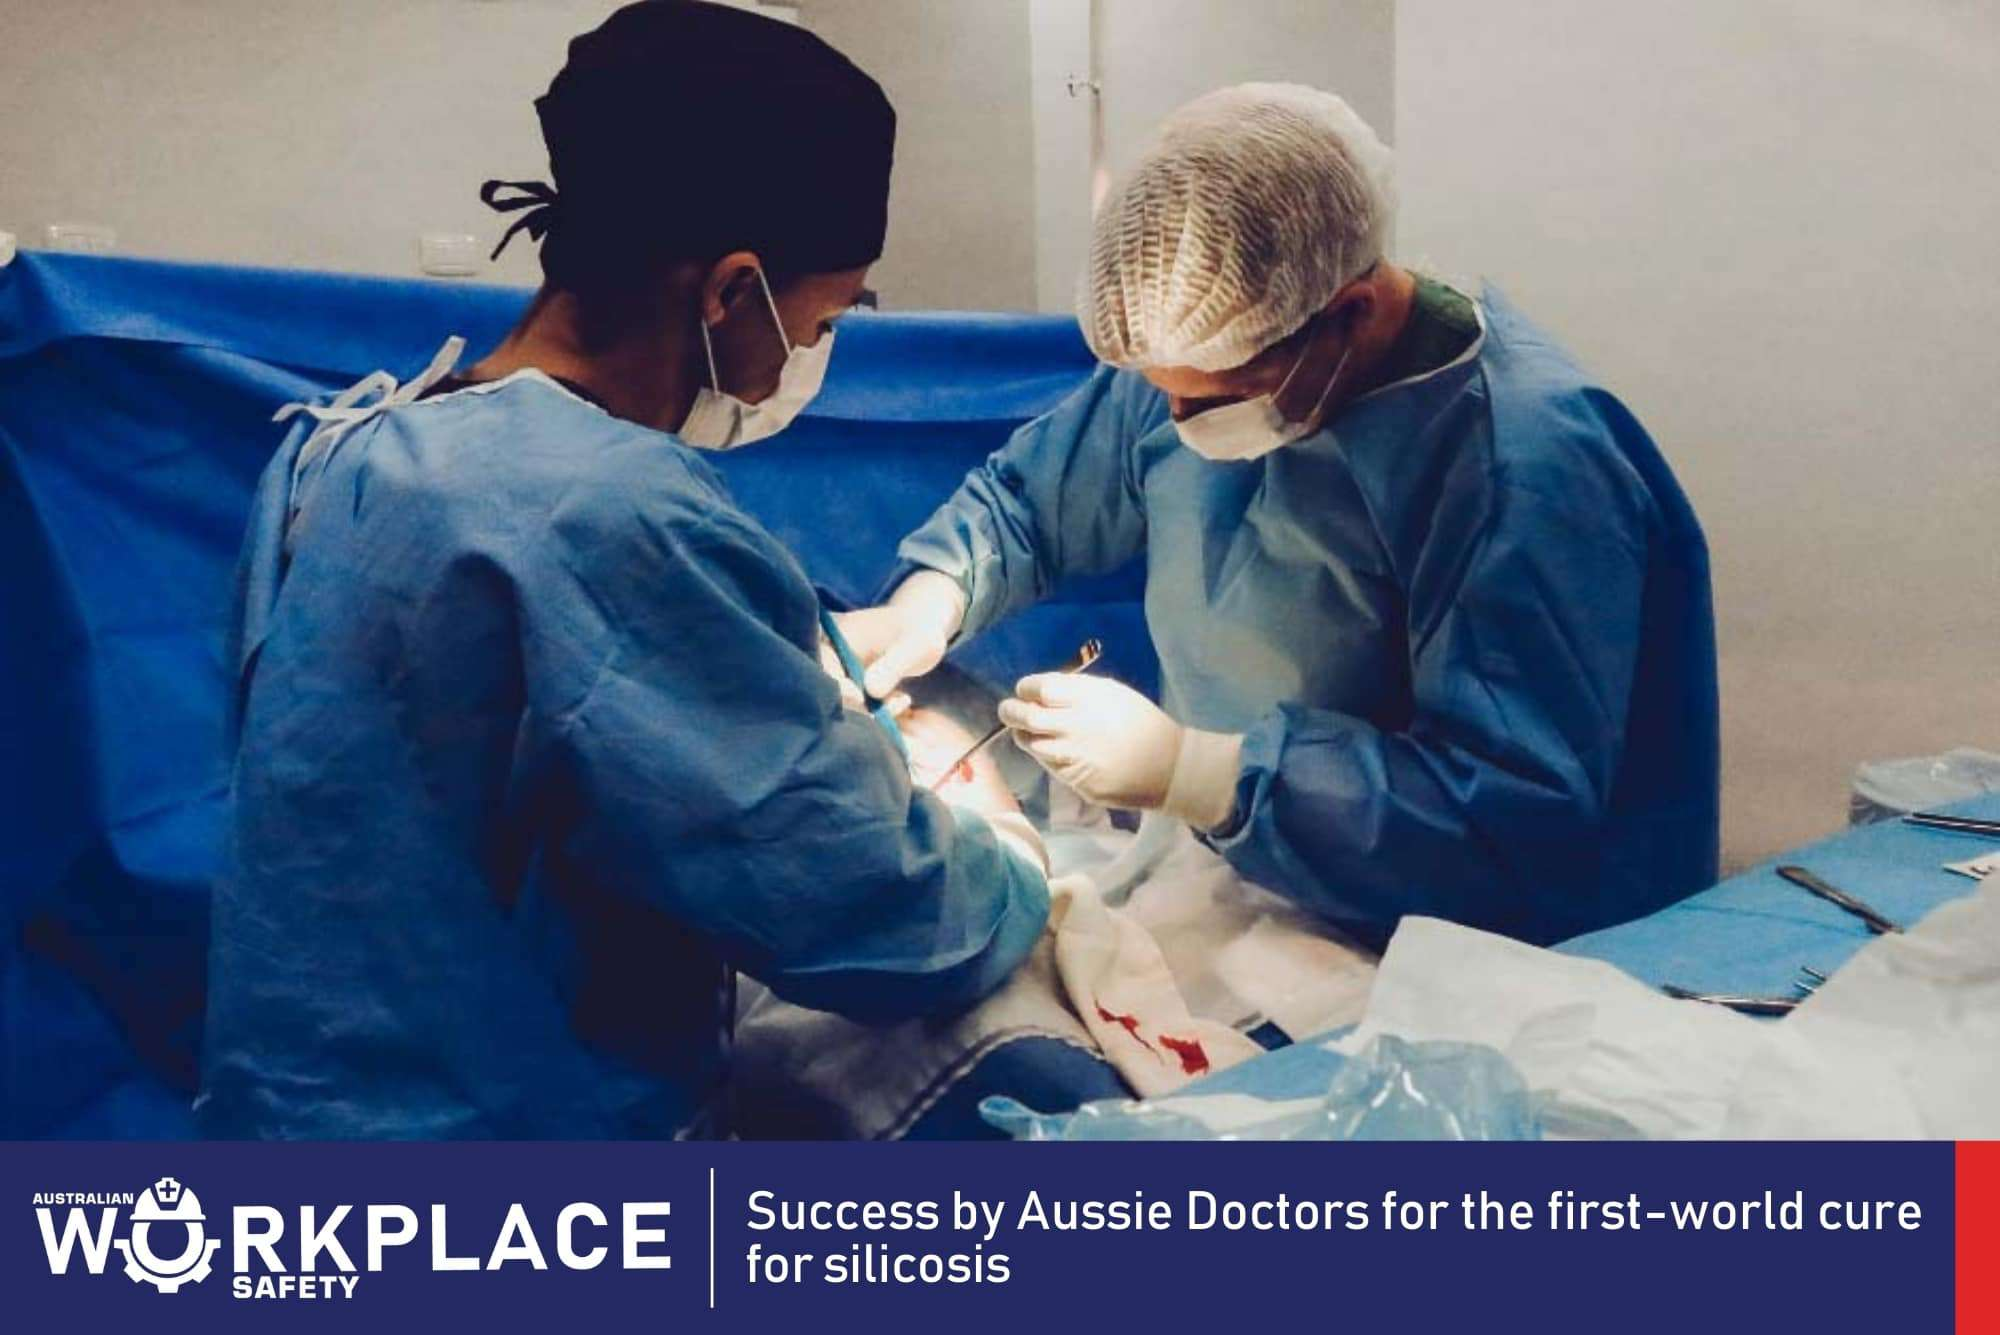 Success by Aussie Doctors for the first-world cure for silicosis